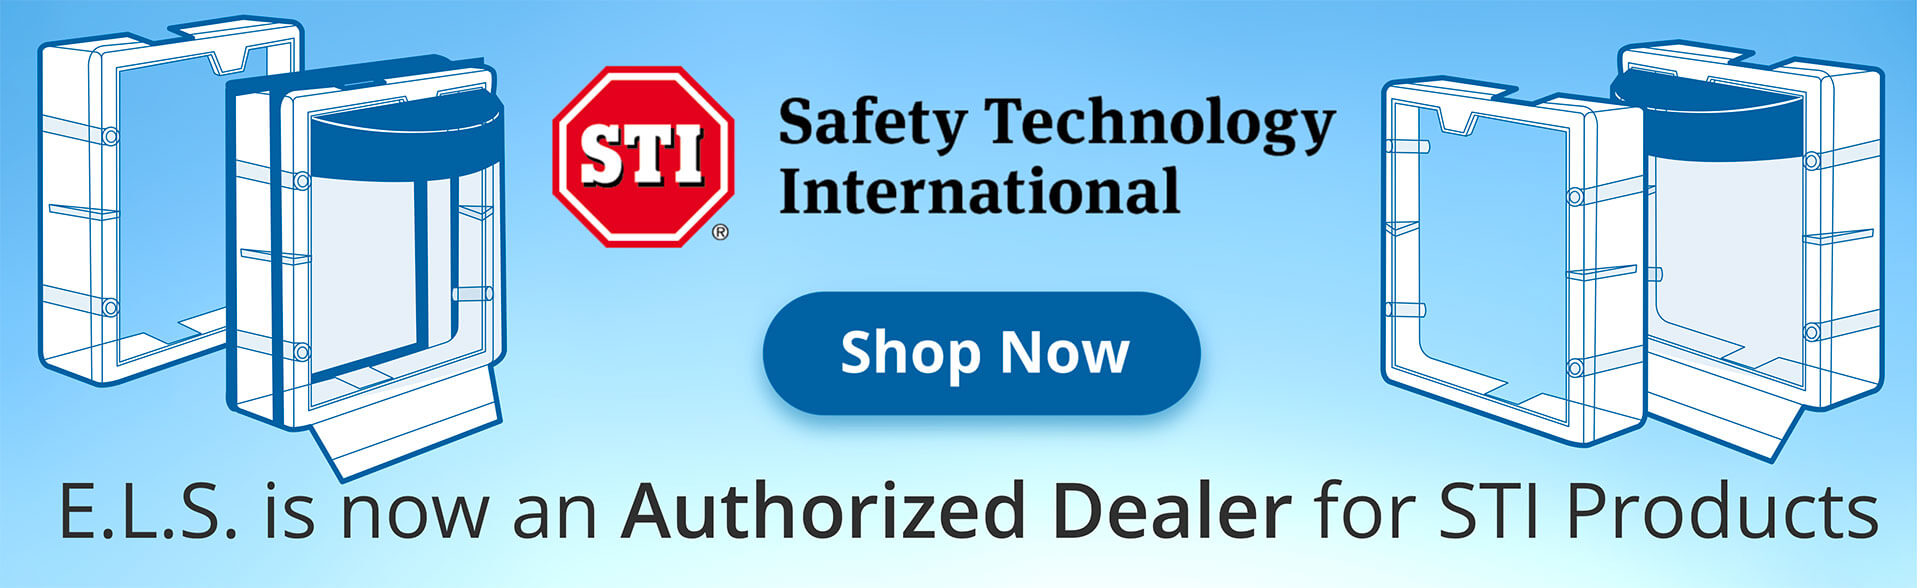 ELS is now an Authorized Dealer for STI Products